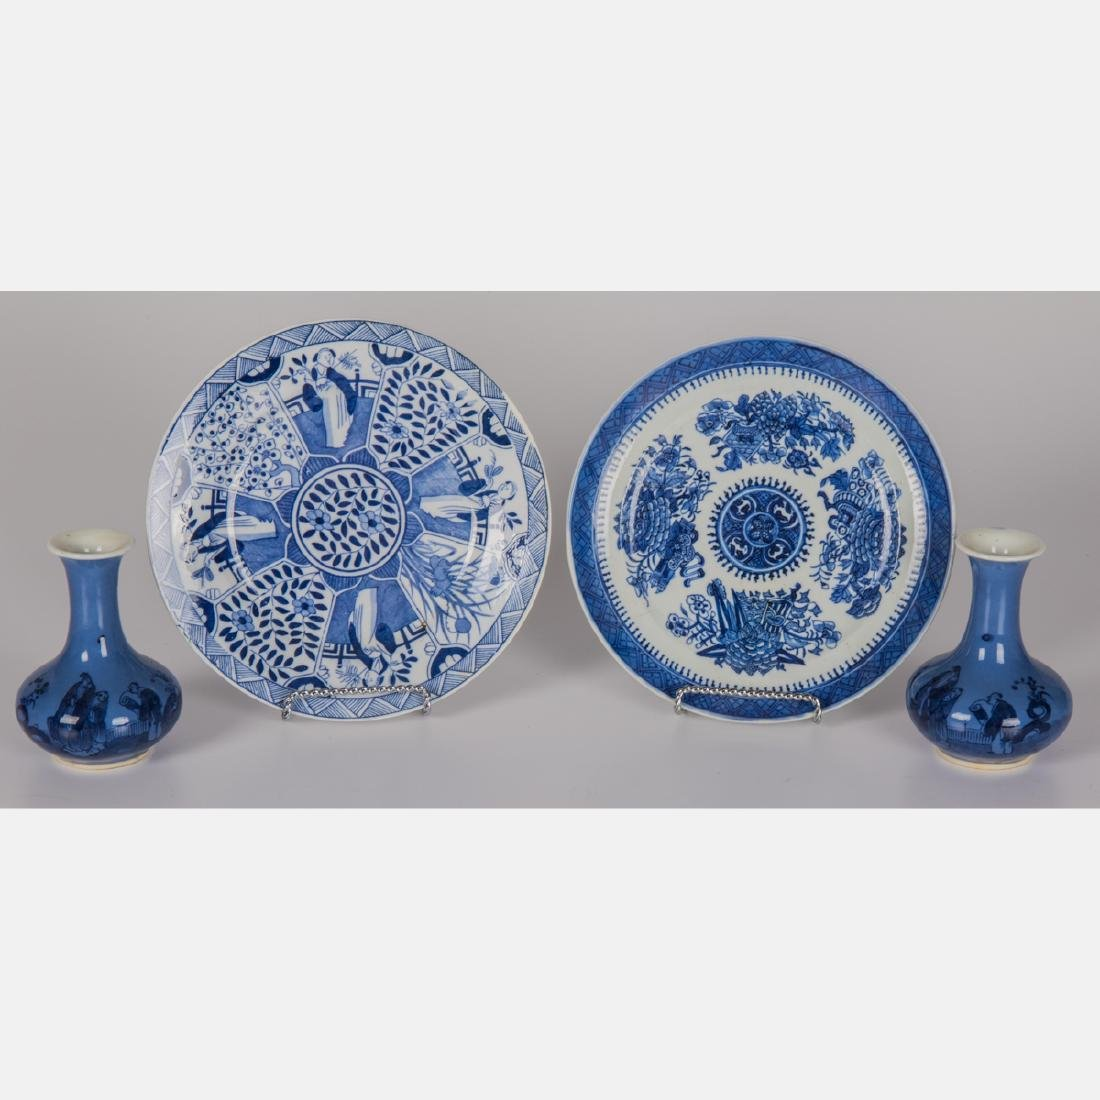 A Group of Four Asian Blue and White Porcelain